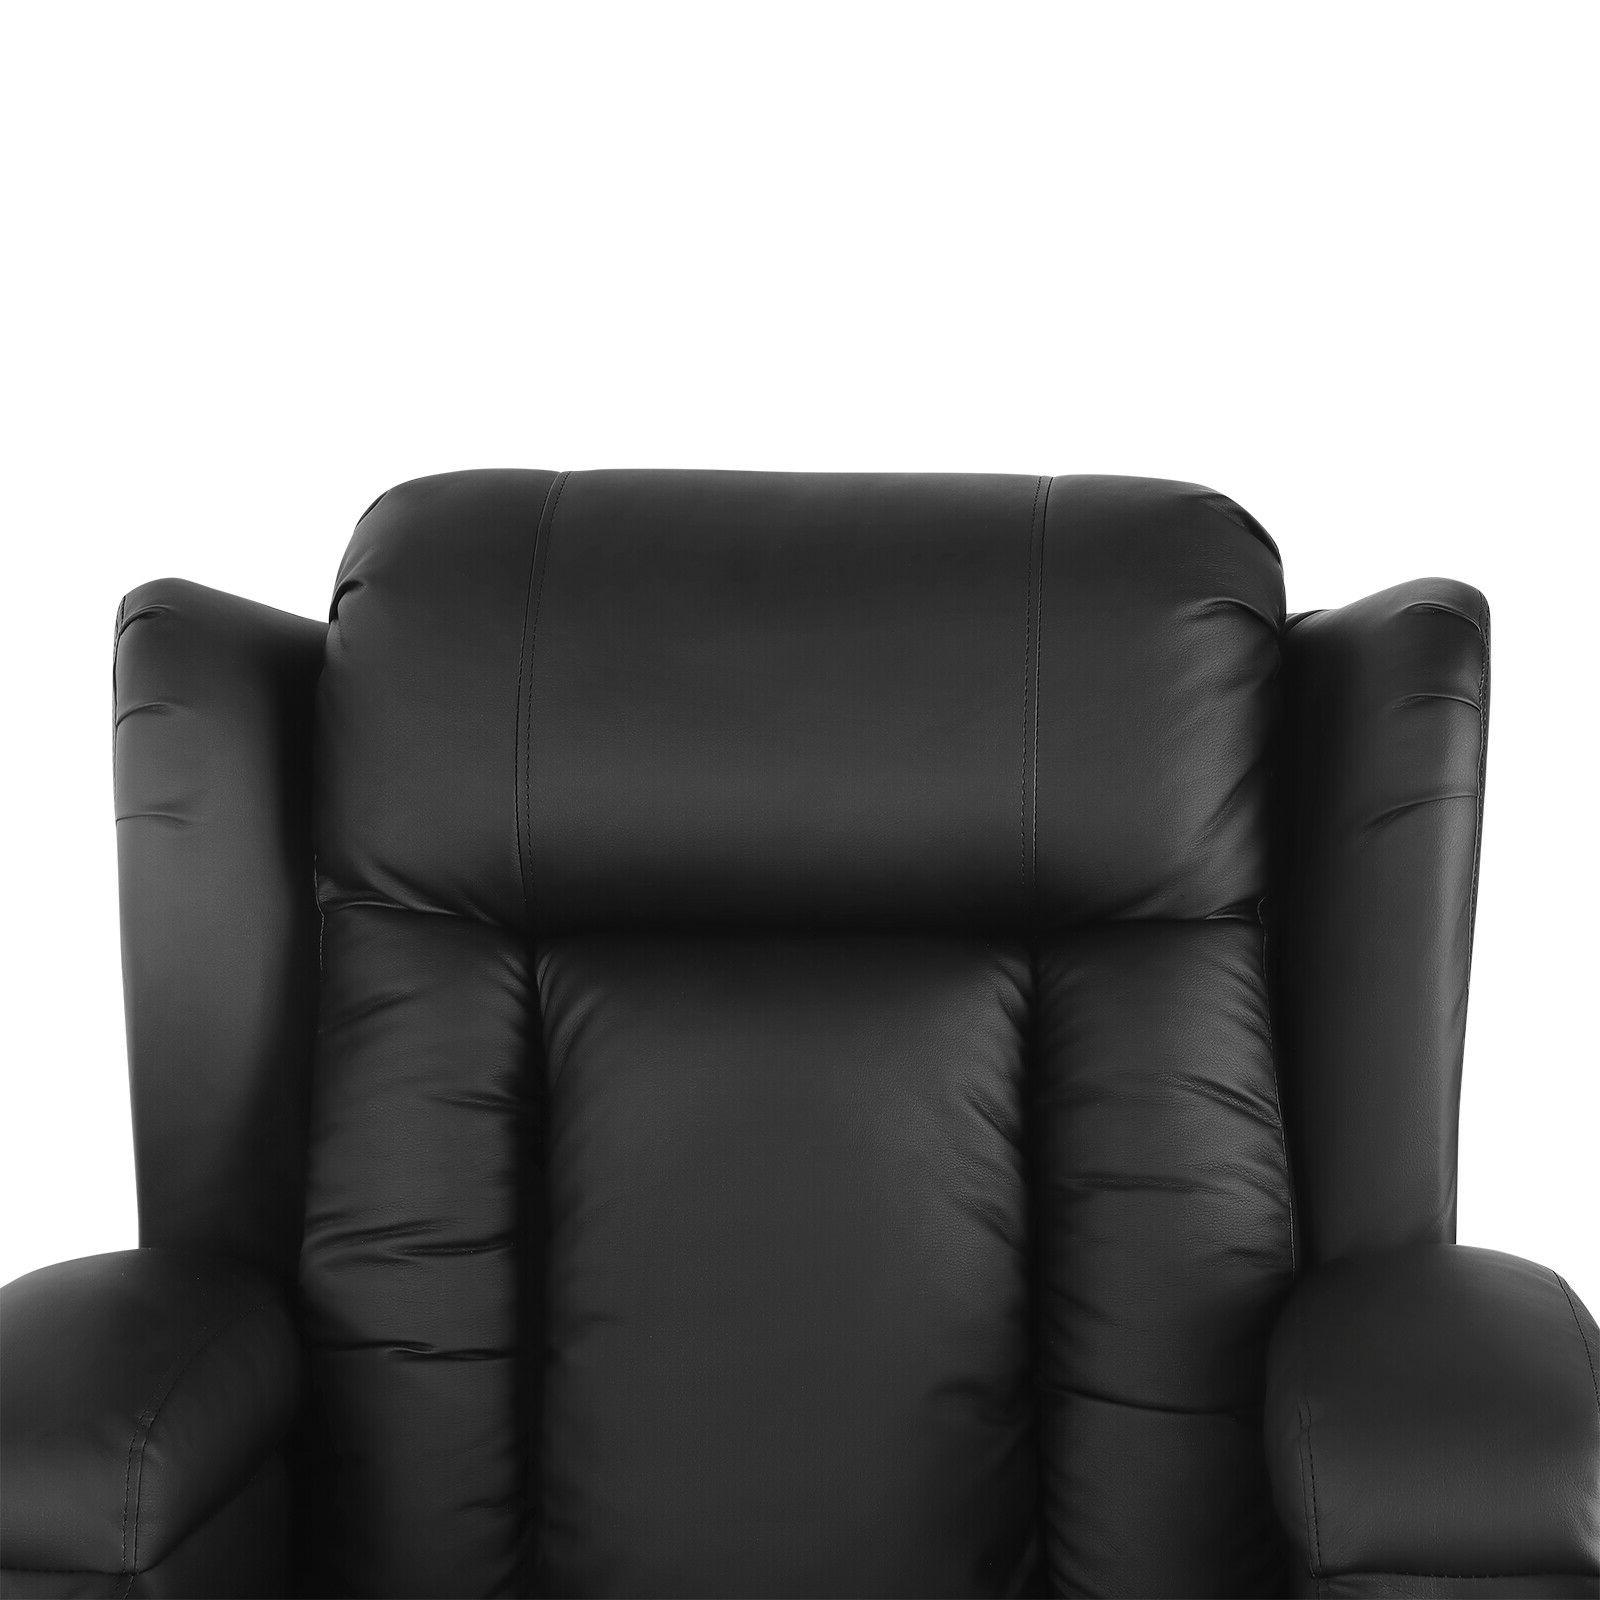 Oversize Leather Massage Recliner 360°Heat Rocking w/Control